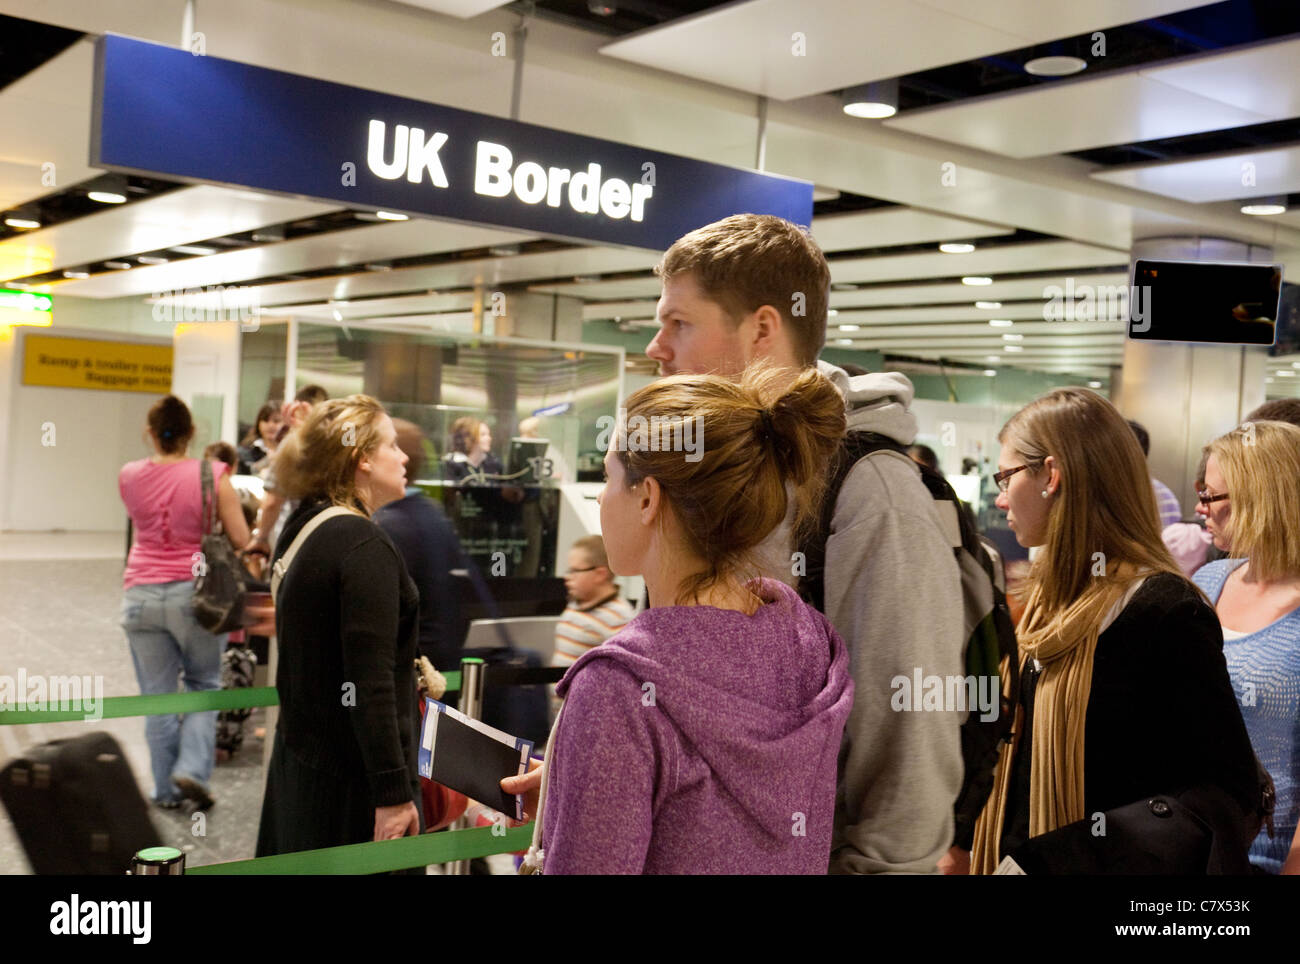 Young people waiting to enter the UK Border at immigration, Terminal 3, Heathrow airport, London - Stock Image